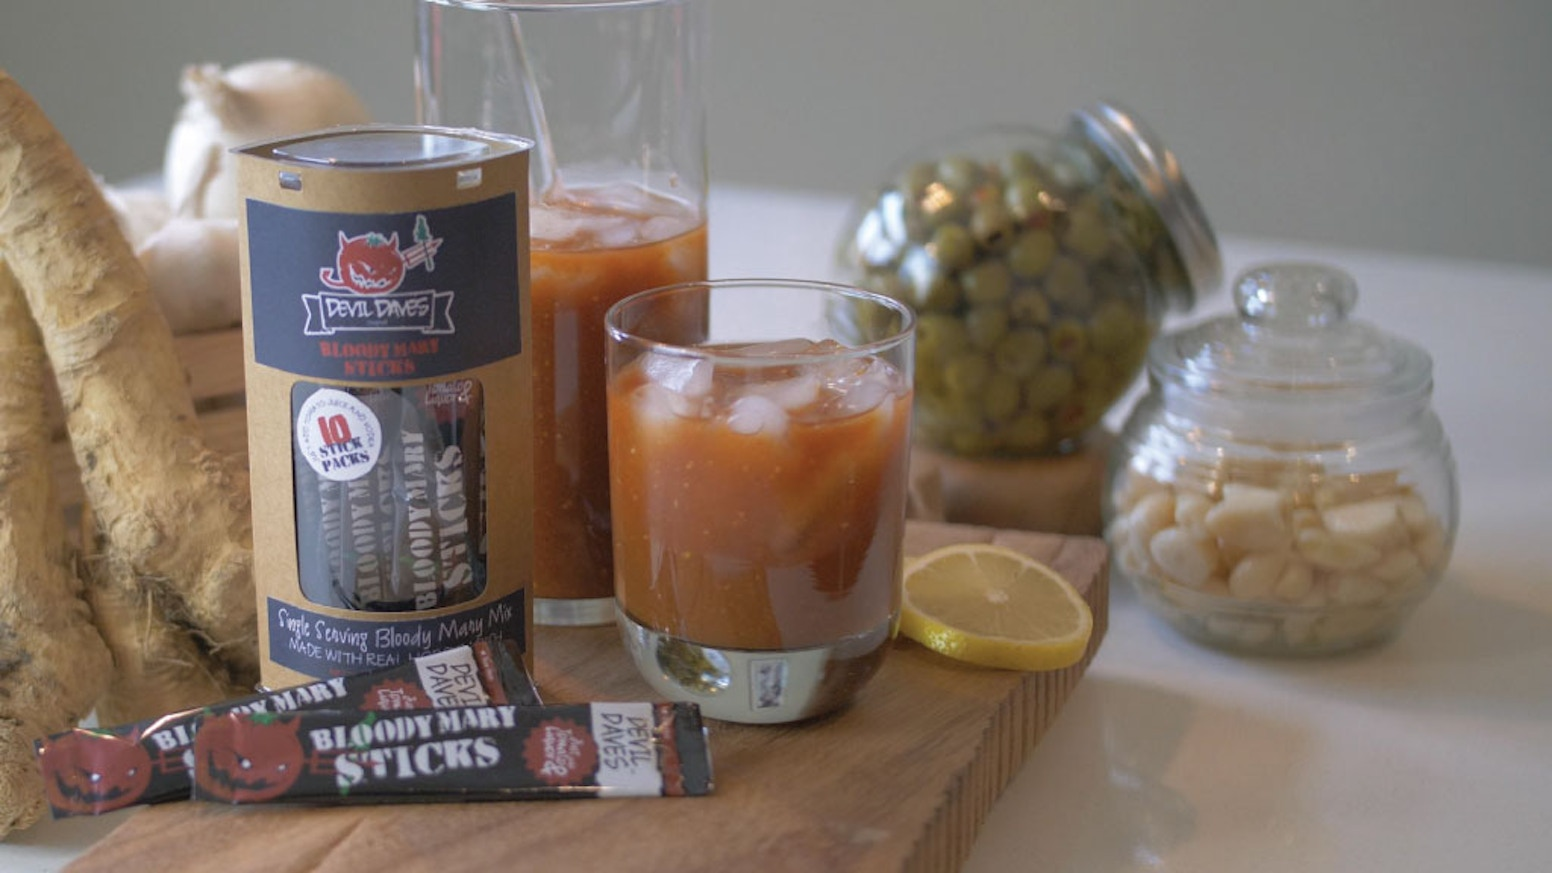 Devil Dave's is a single serving stick pack with real grated horseradish that makes an Instant Bloody Mary when added to tomato juice. Our pre-sale is still going on. Even if you missed our Kickstarter - You can join in by clicking the link below!